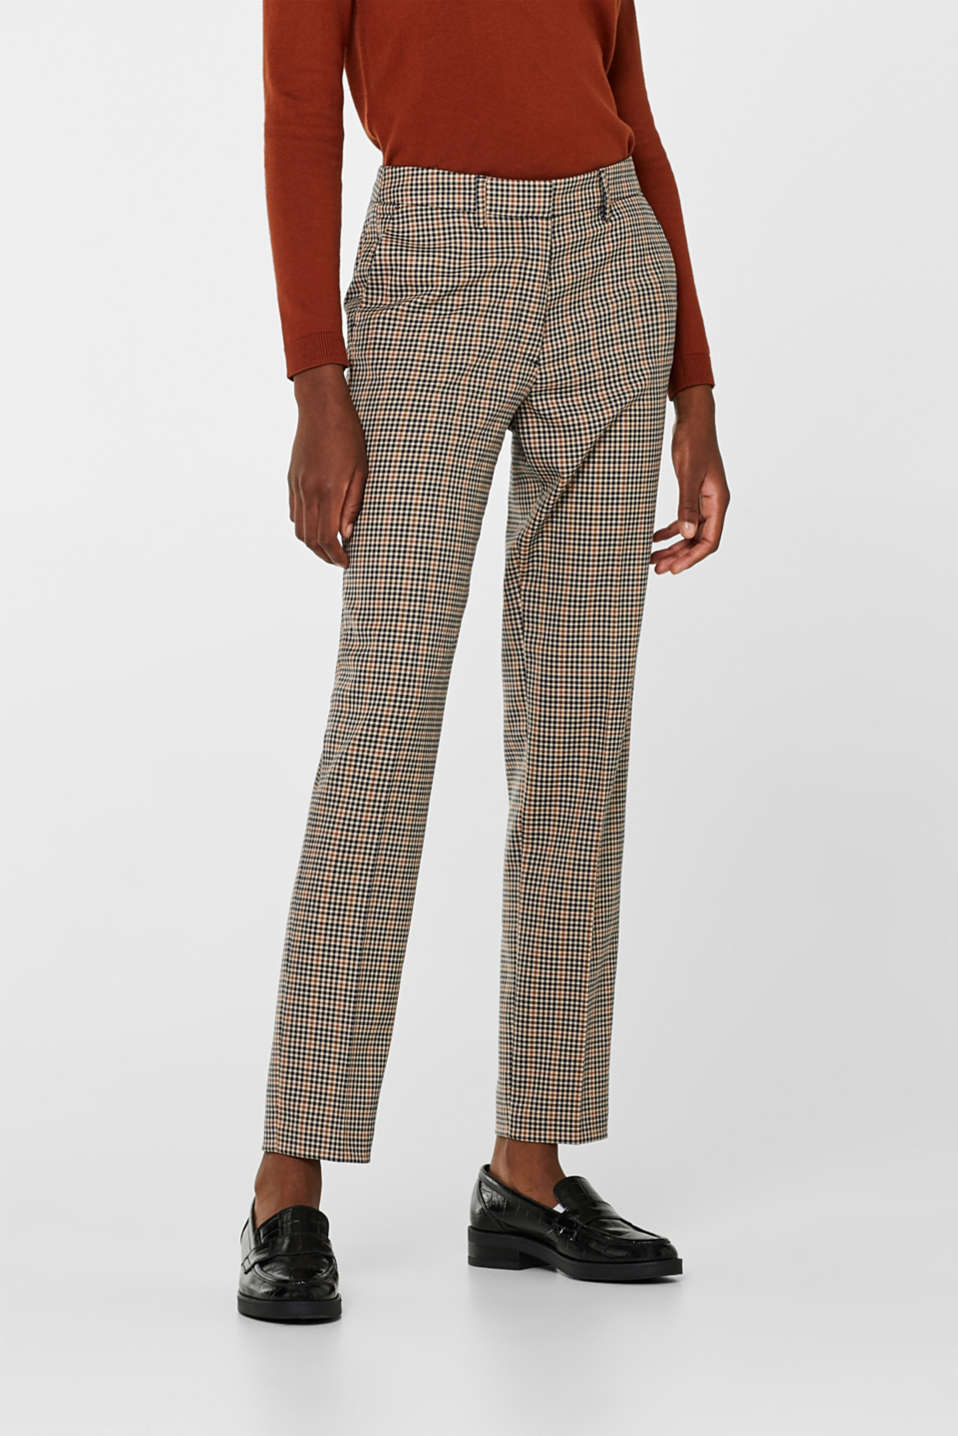 Stretch trousers with a small check, CAMEL, detail image number 6